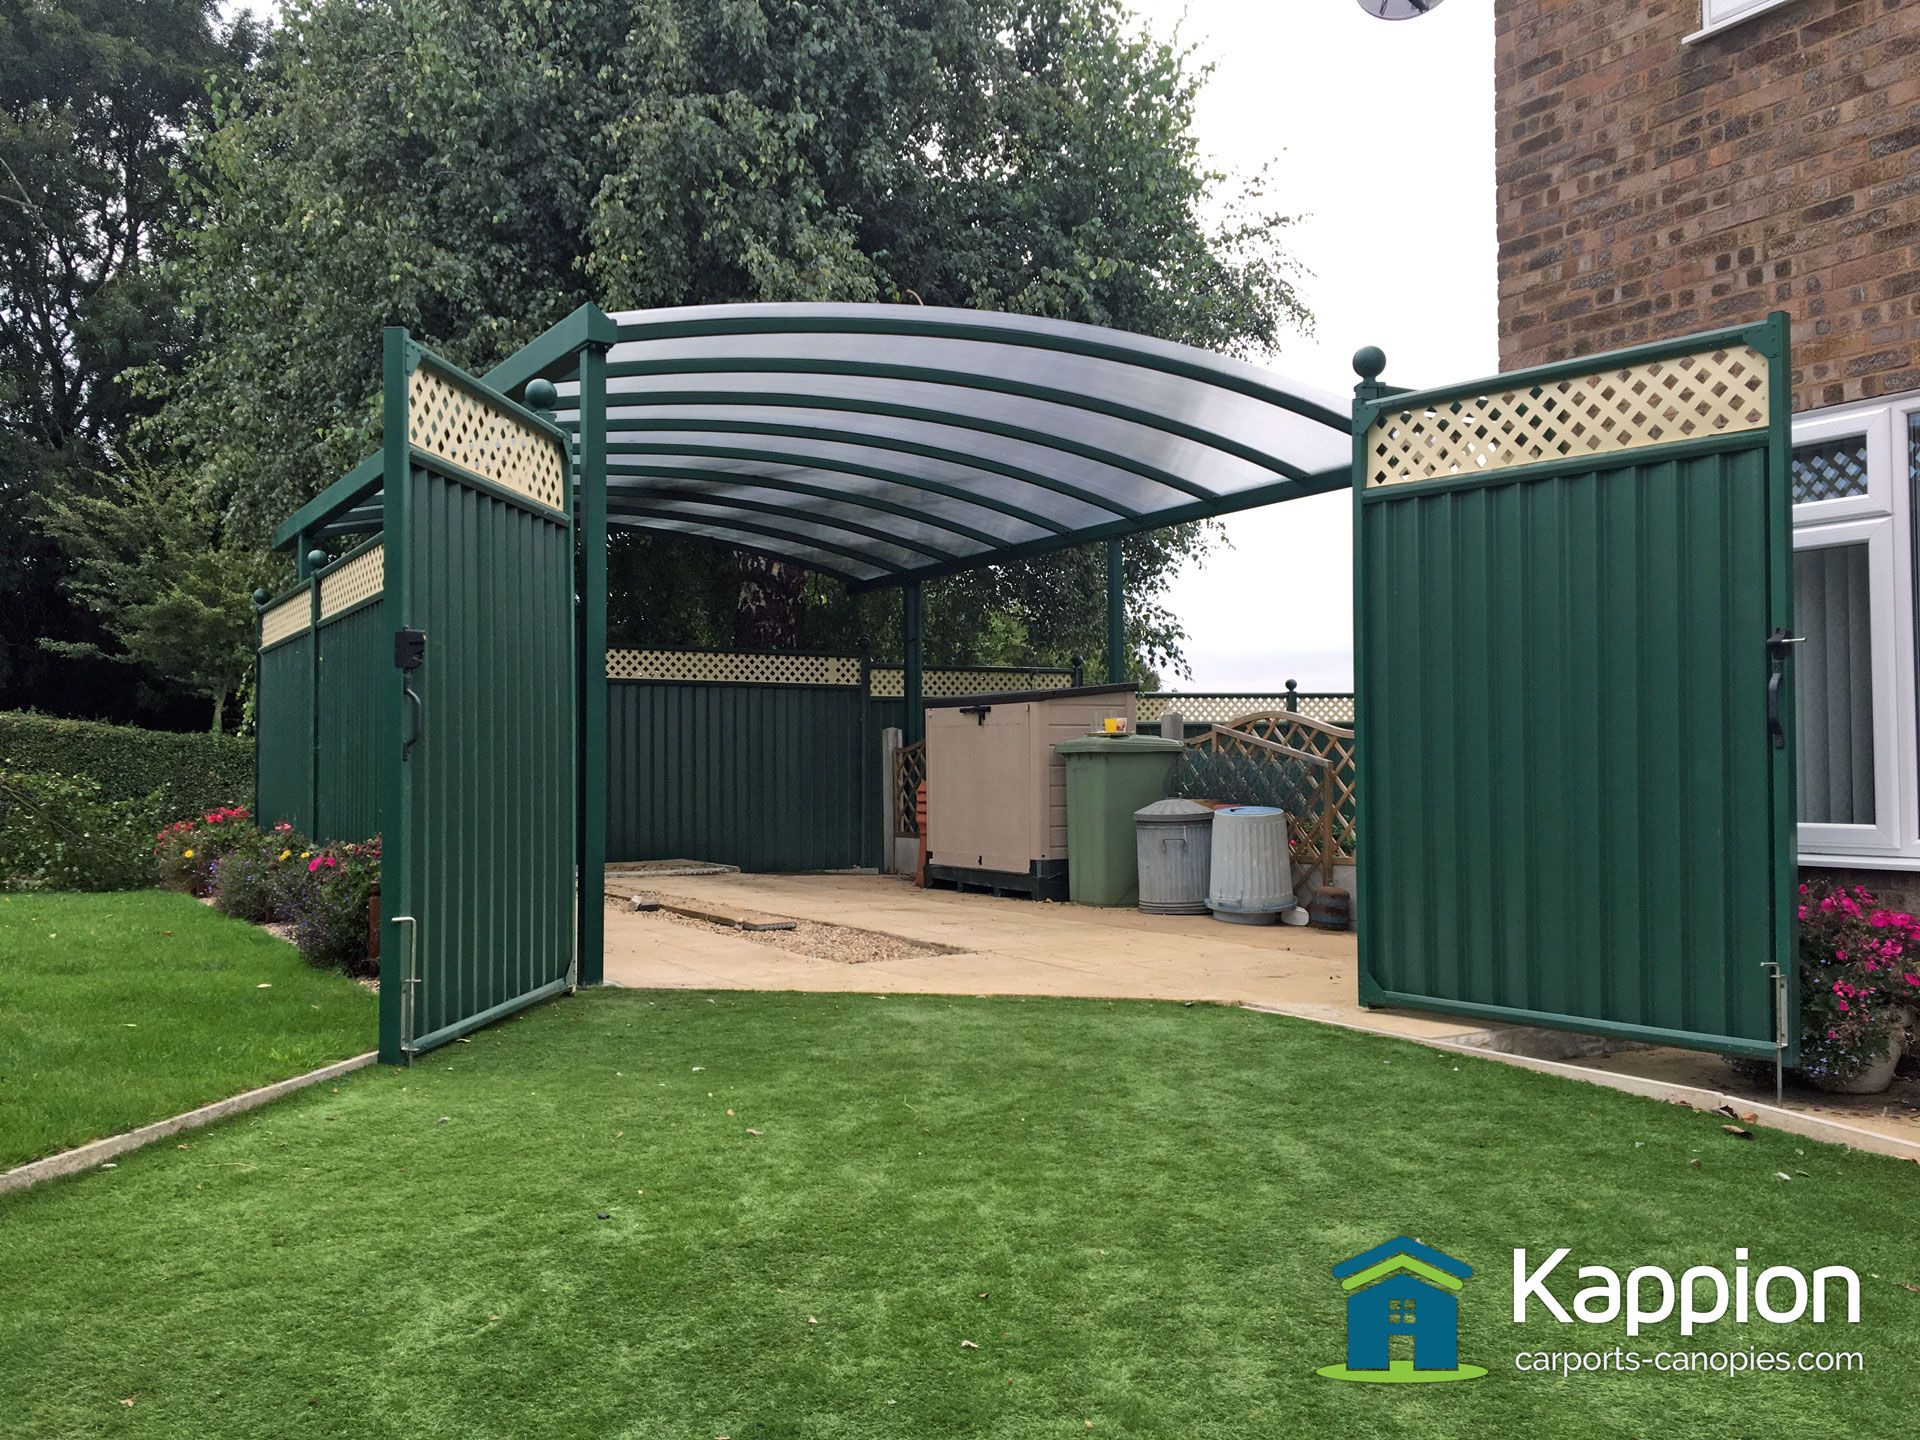 Contemporary Caravan Carport Canopy Designed To Blend In With It S Surroundings Carport Canopy Christmas Village Houses Carport Prices